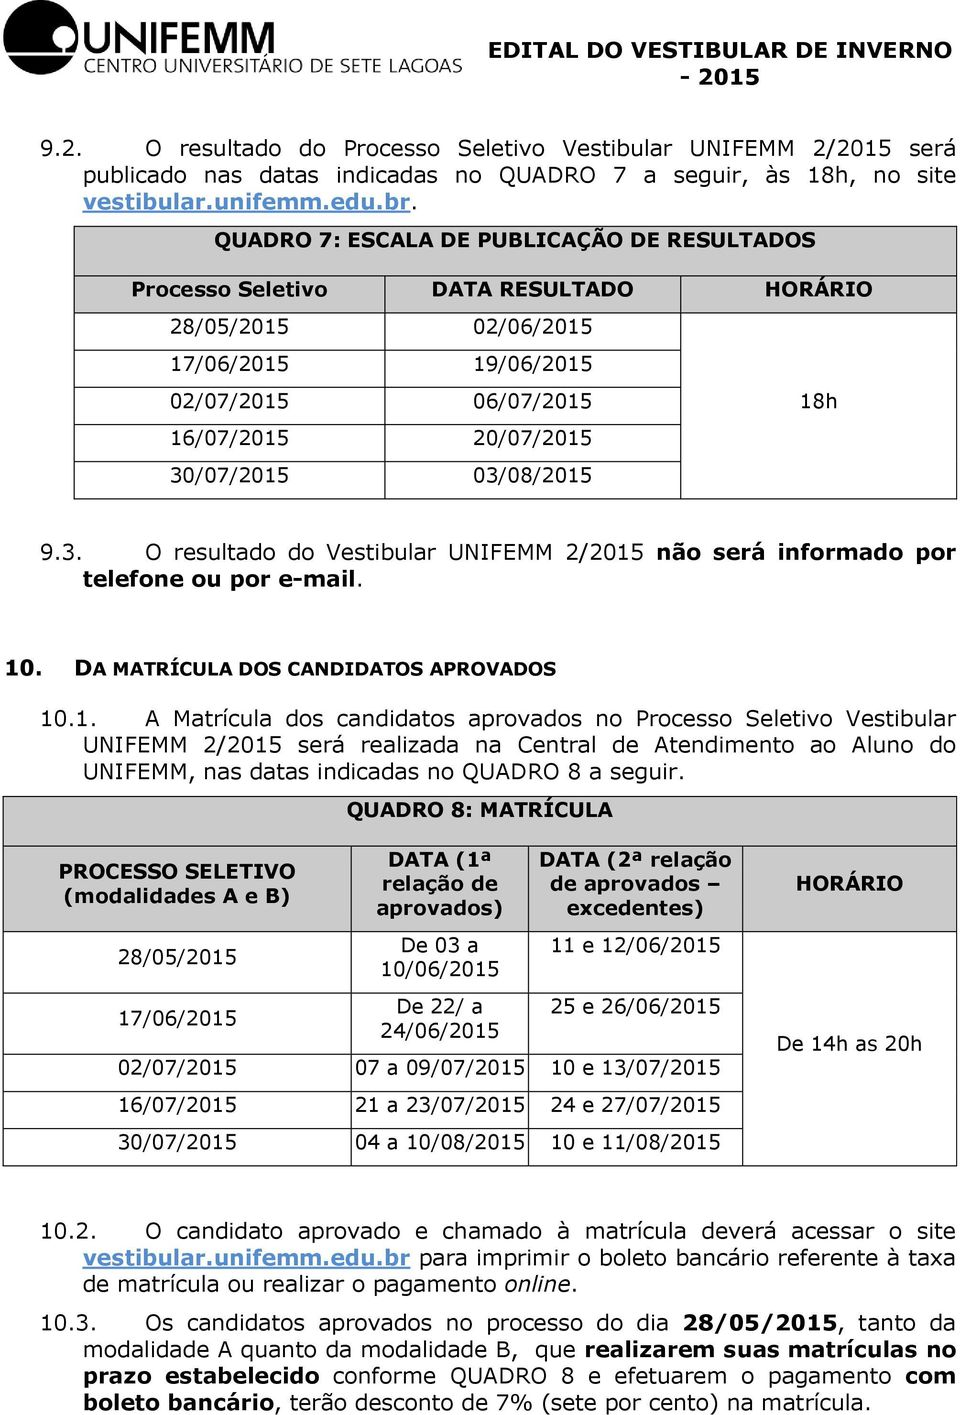 9.3. O resultado do Vestibular UNIFEMM 2/2015